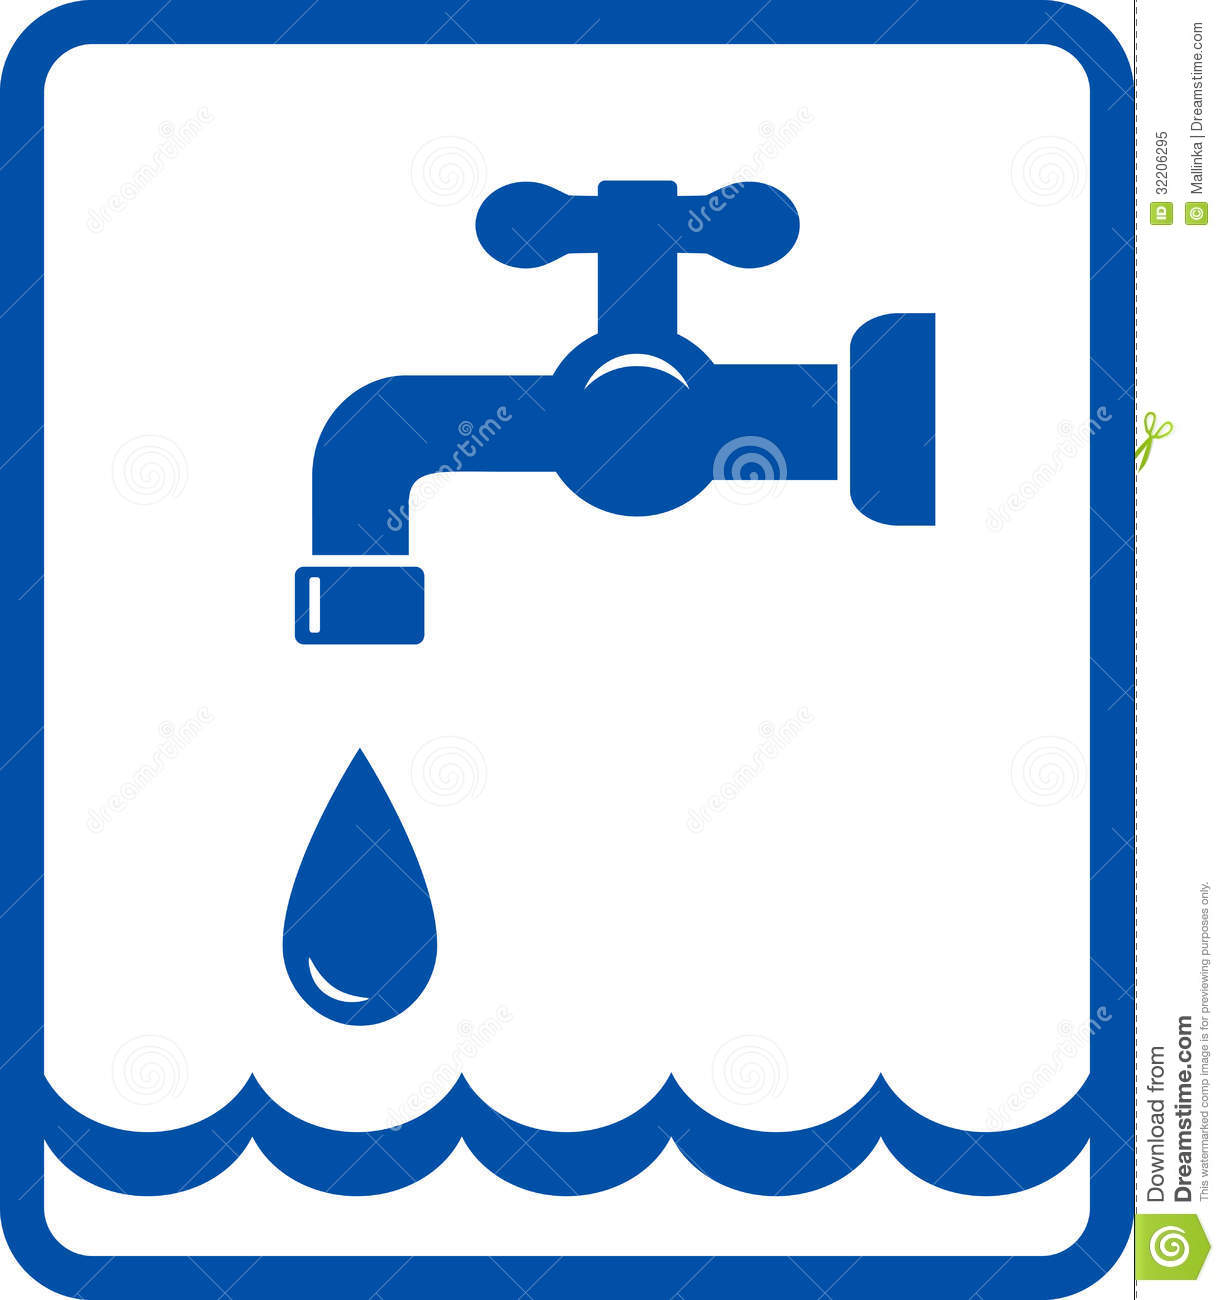 Water Tap Clip Art – Cliparts